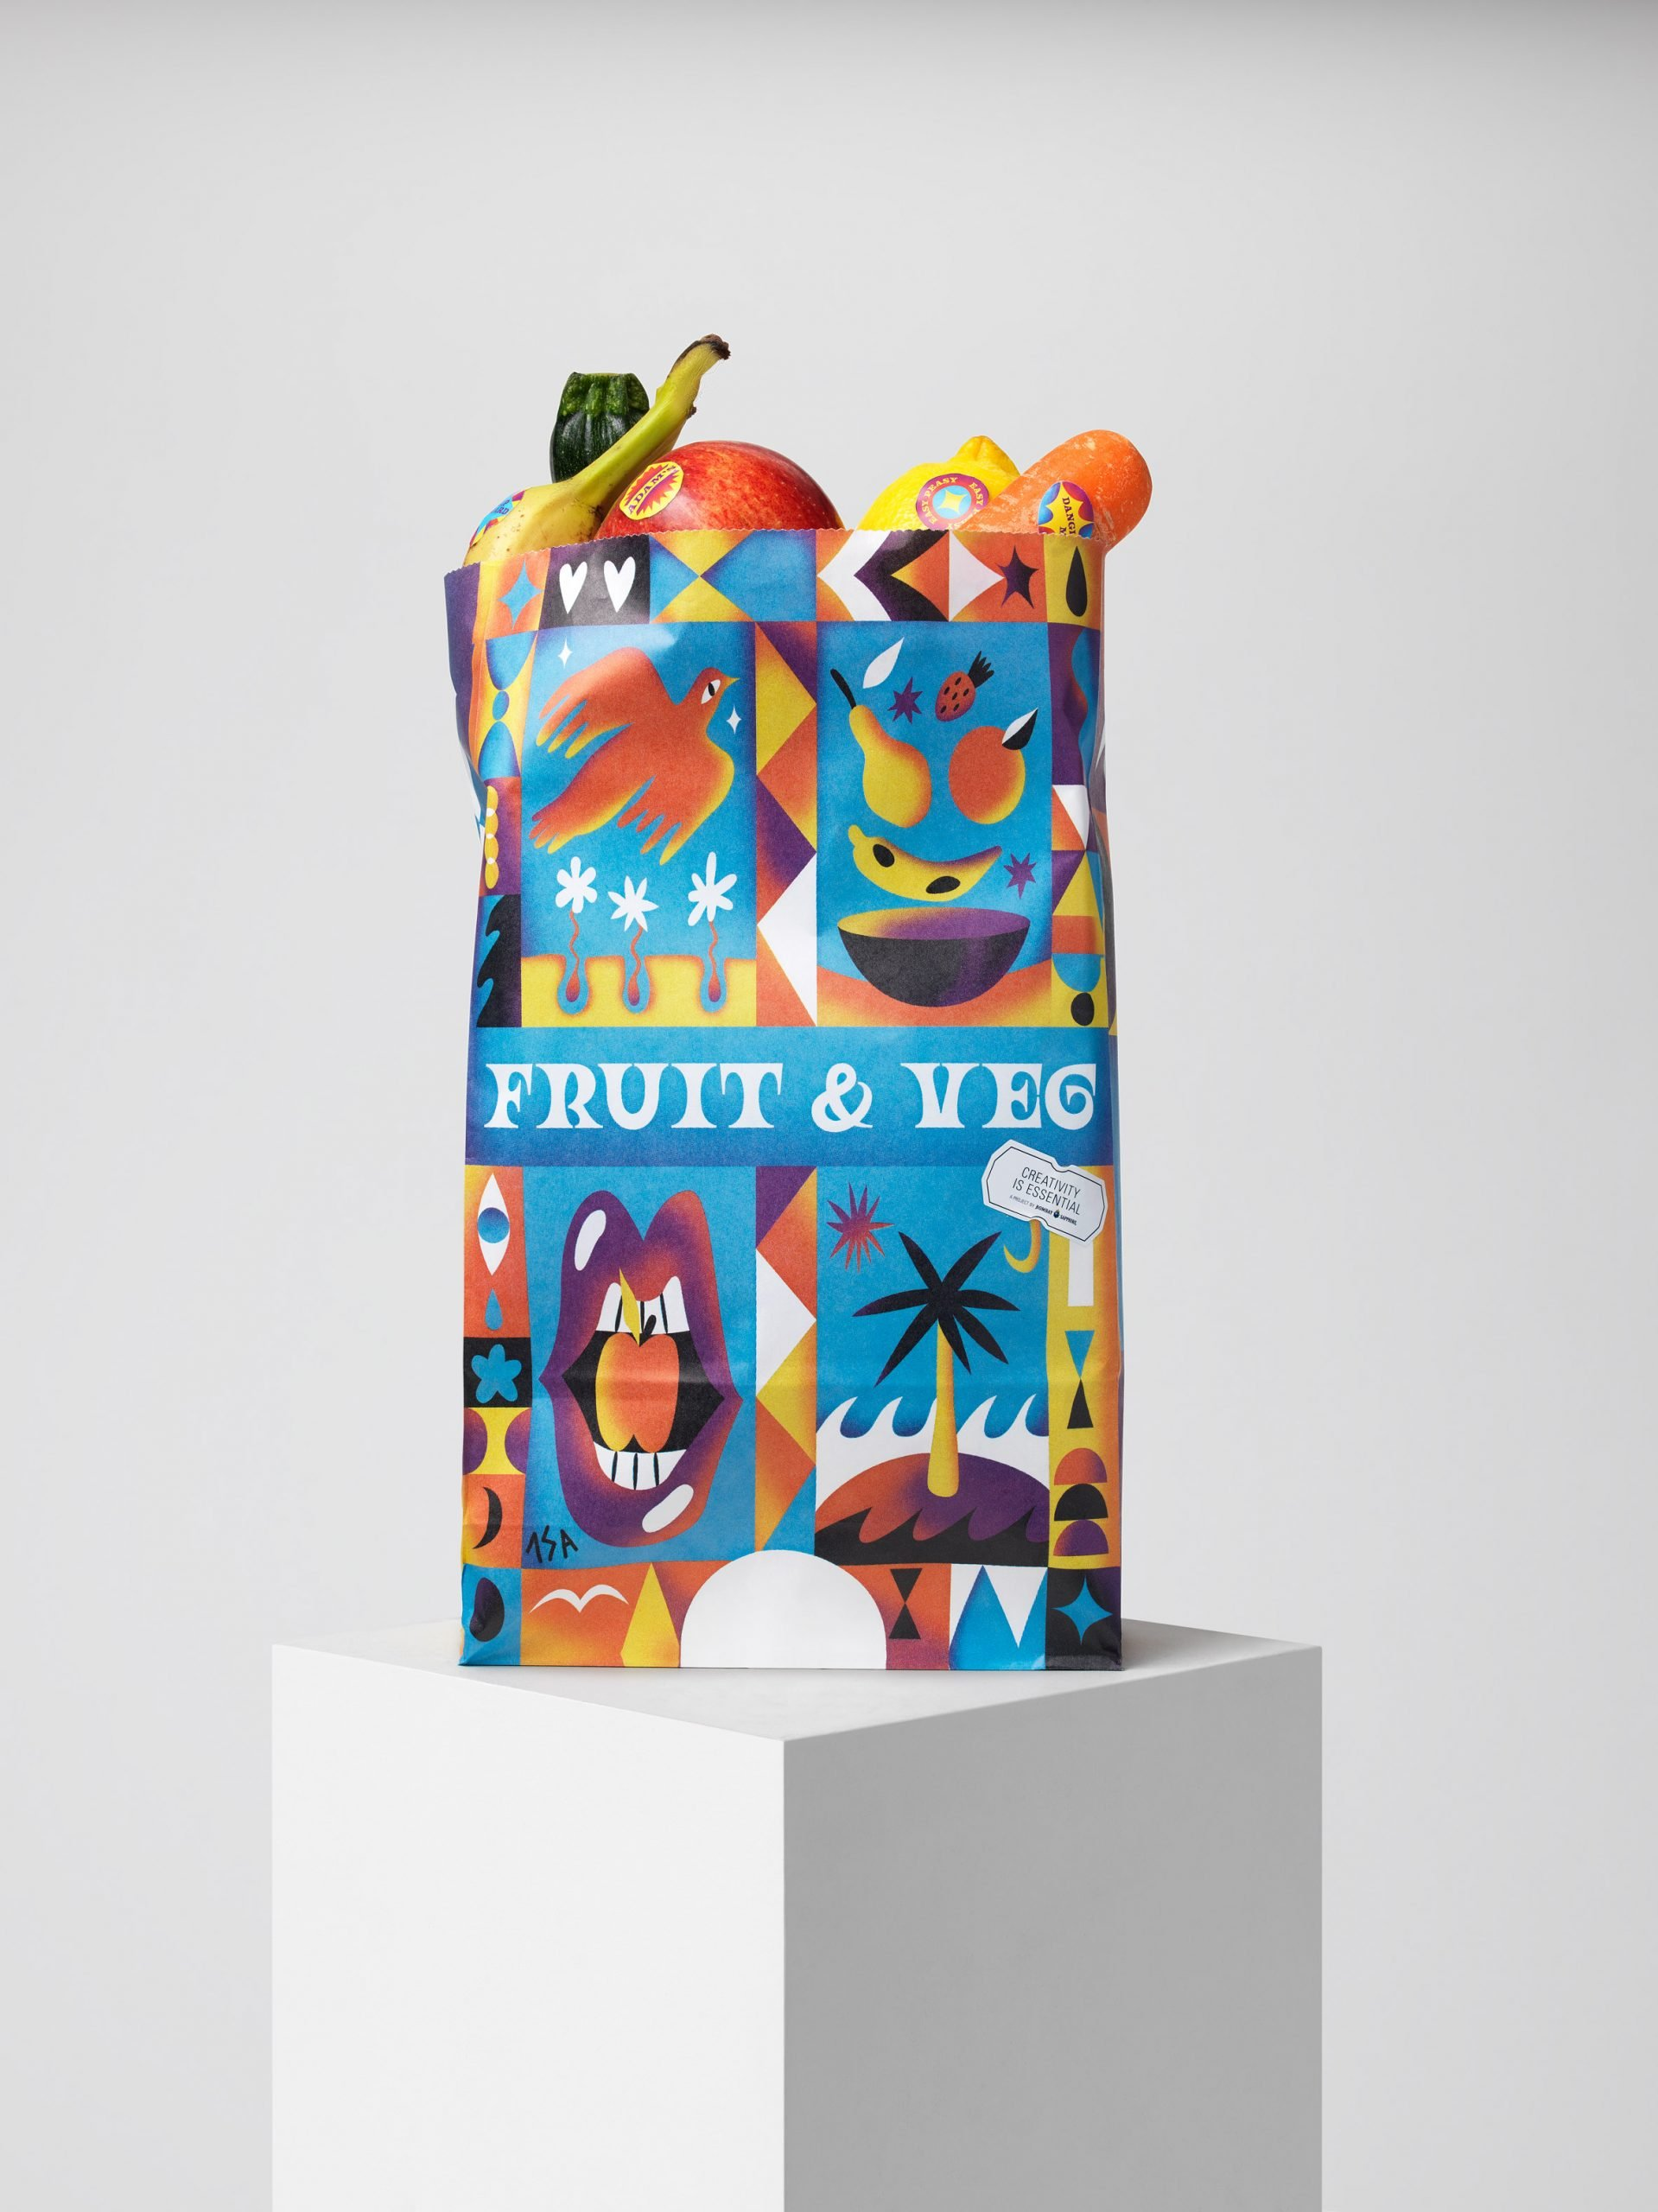 Fruit and veg stickers by Isabelle Lima